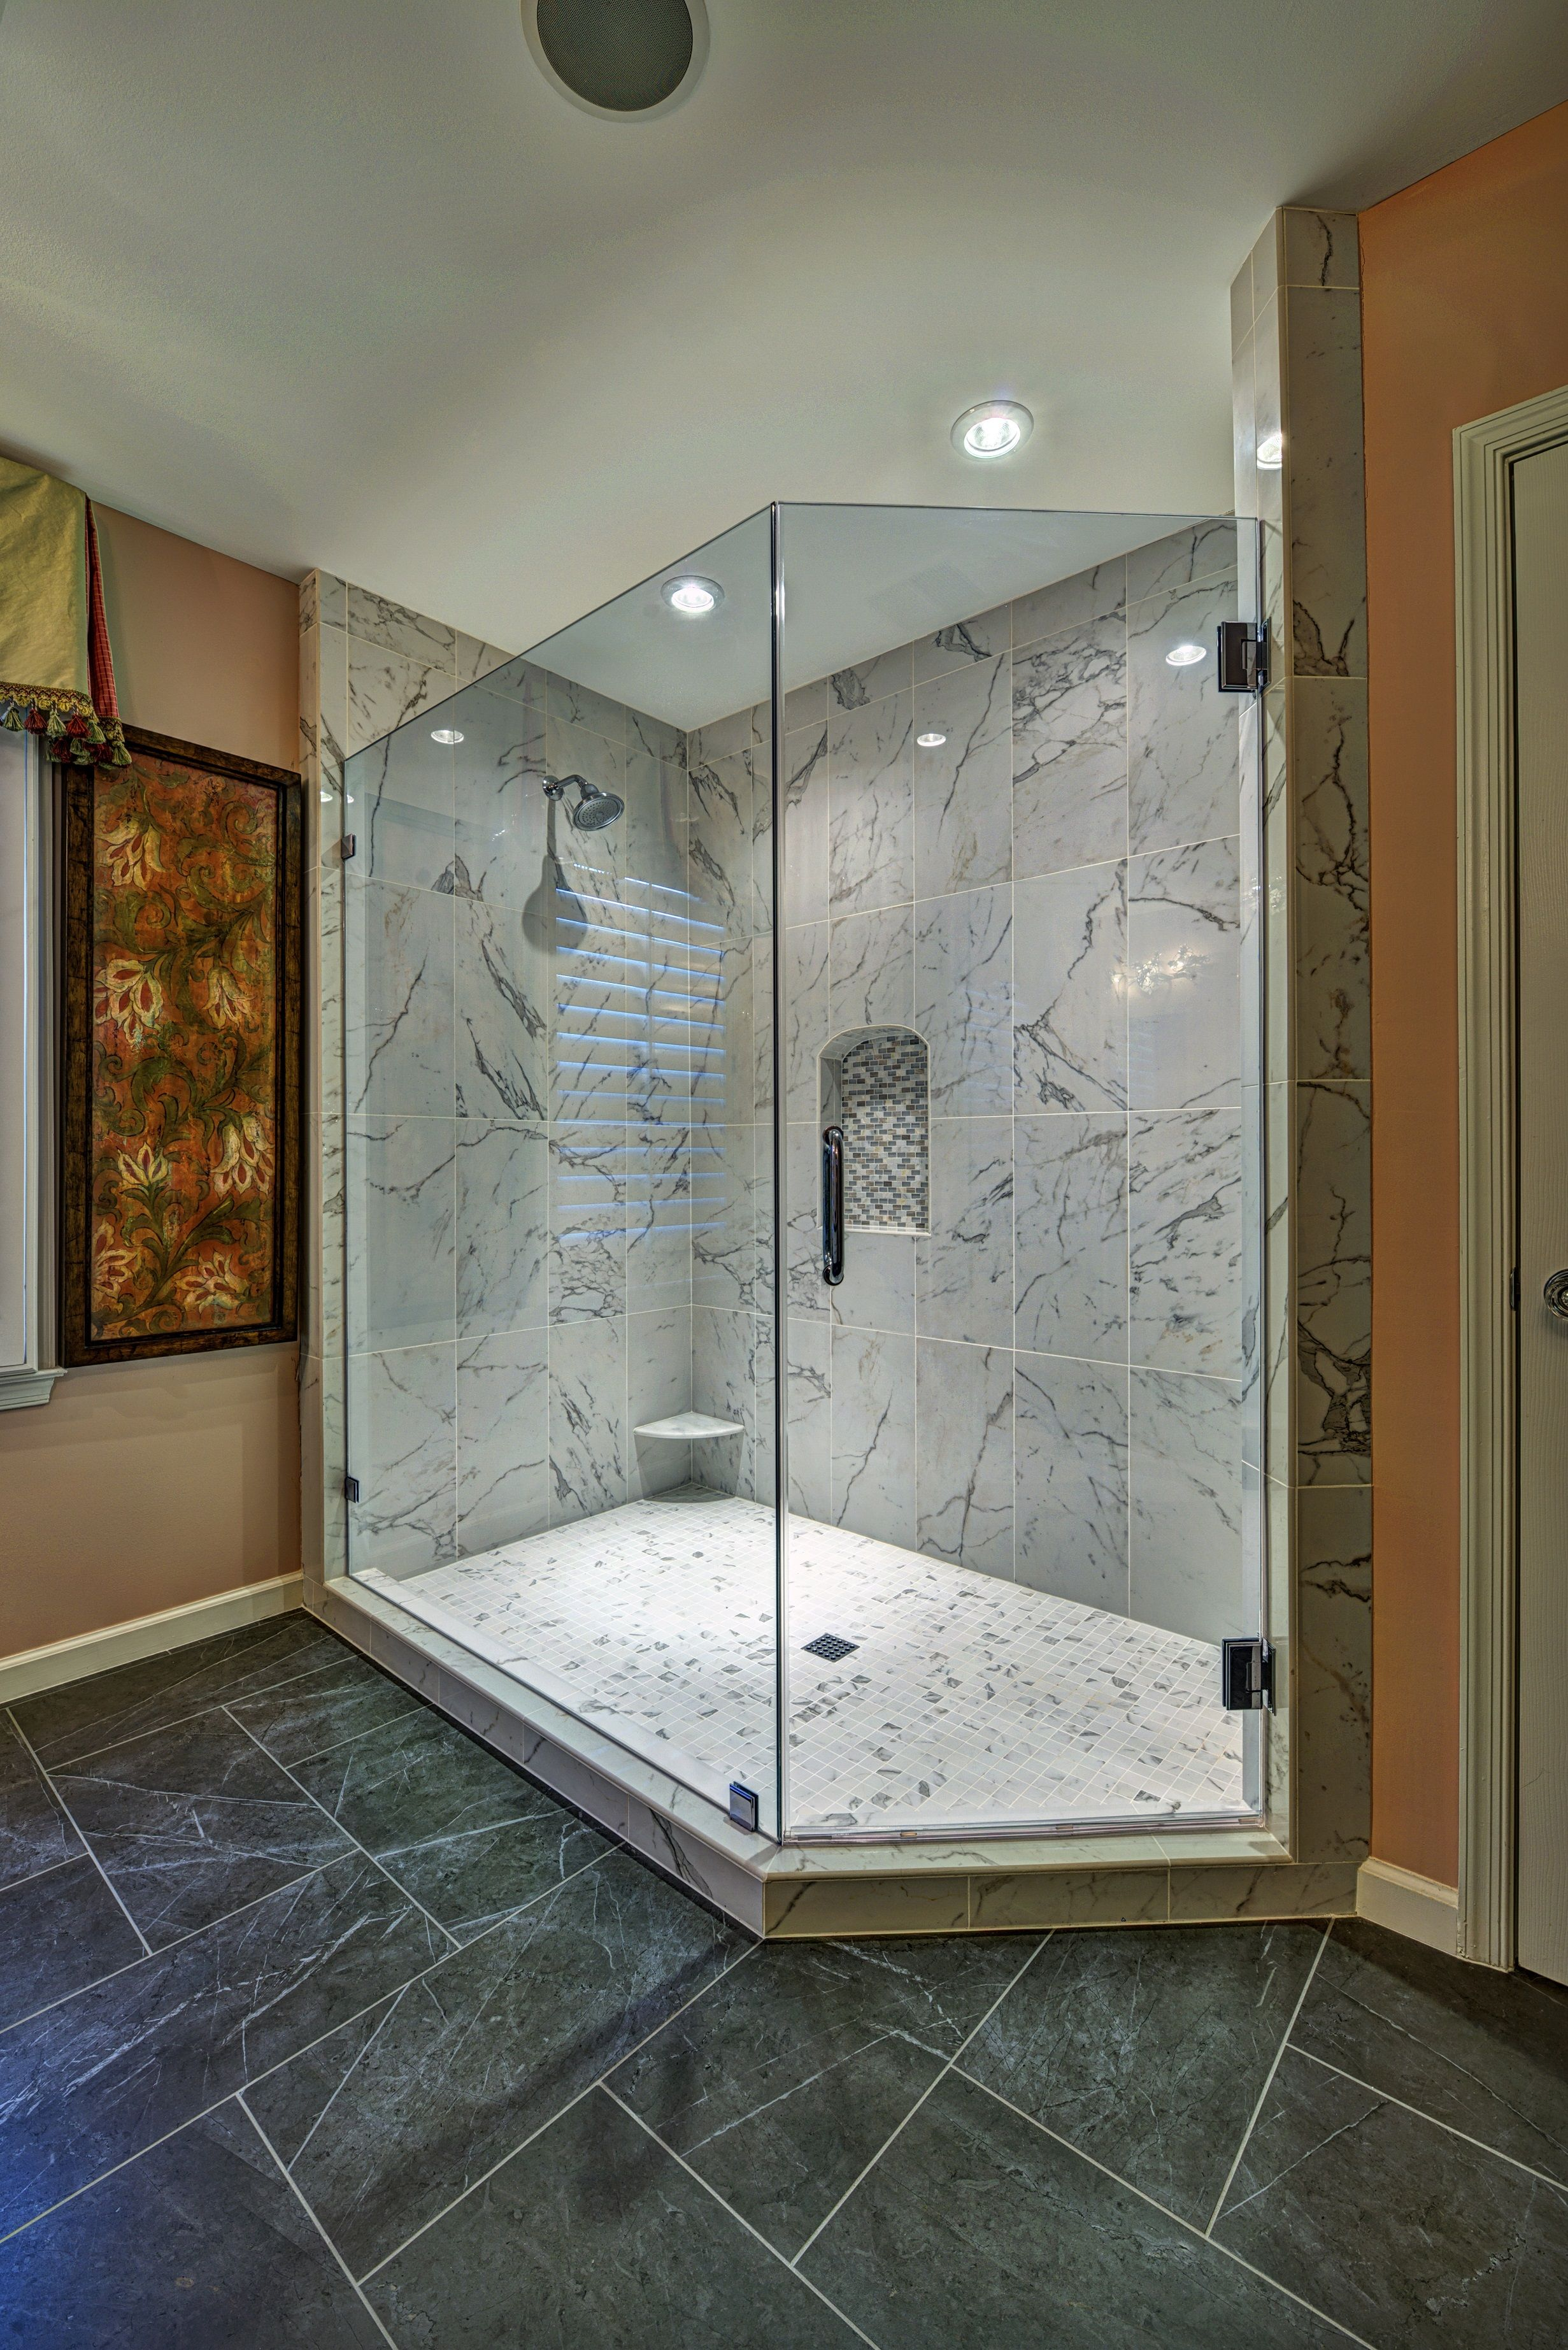 Bathroom Remodel In Leesburg Virginia Bathroomsrendon Classy Virginia Bathroom Remodeling Decorating Design